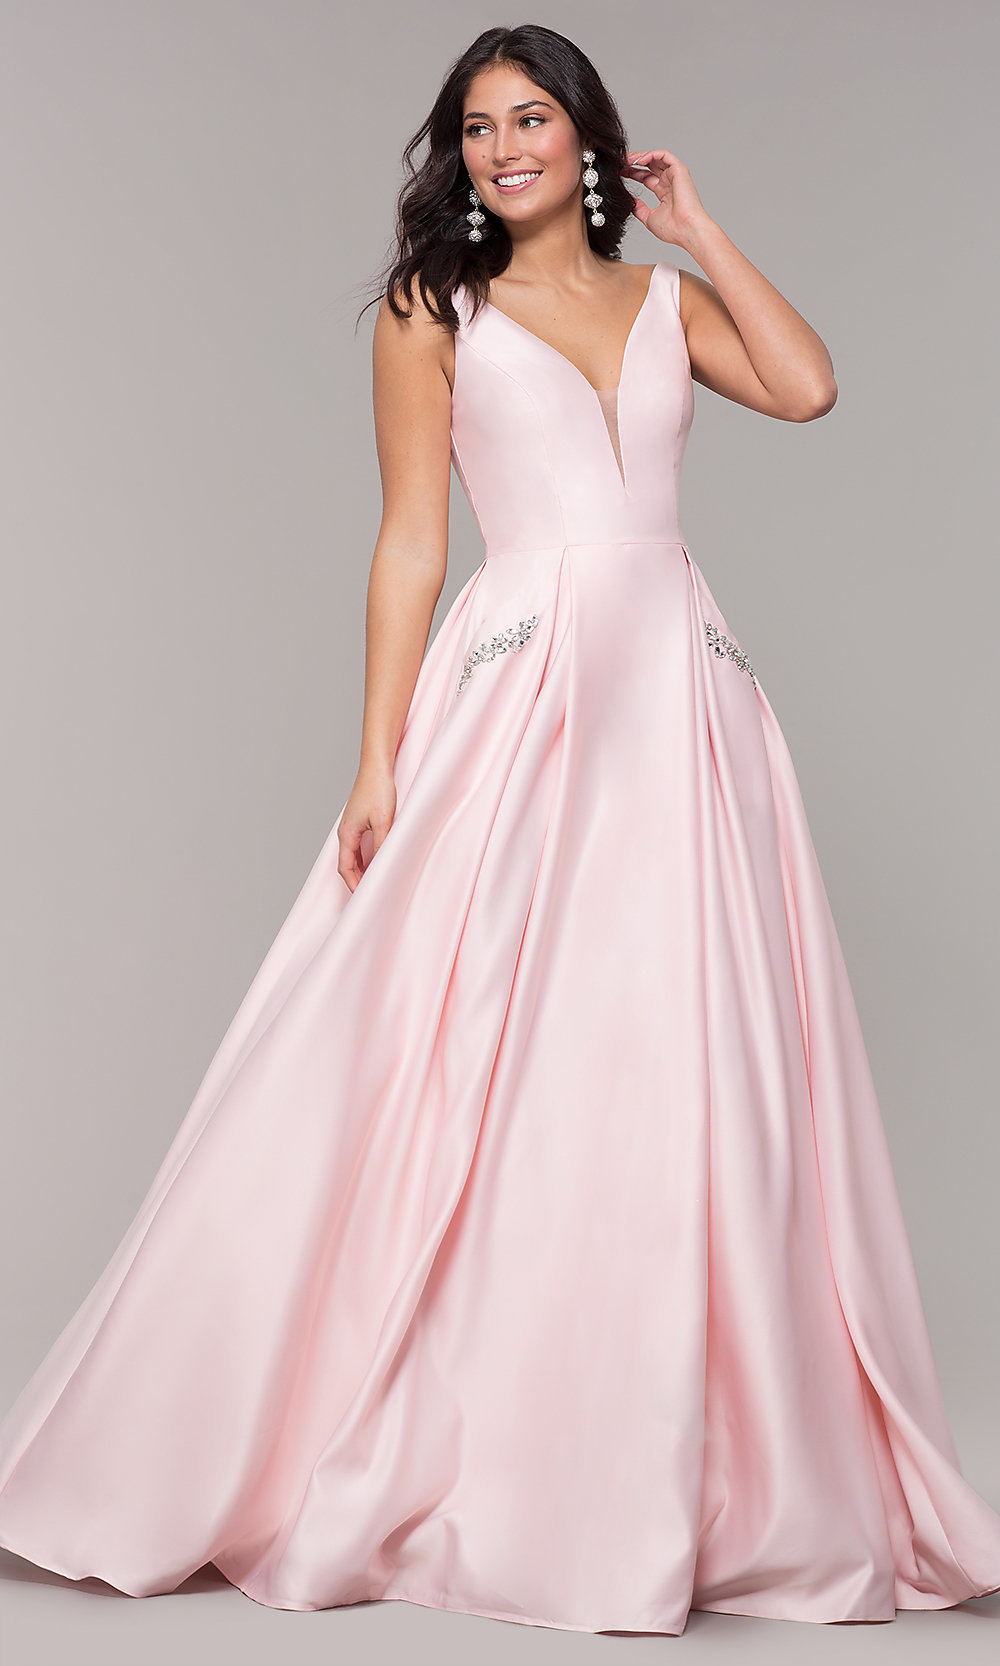 4aa3cef5b5 Serenade Tiffanys Tia Pale Pink Prom Dress 4 229 00. Tap To Expand. Long  Ballgown Style V Neck Prom Dress